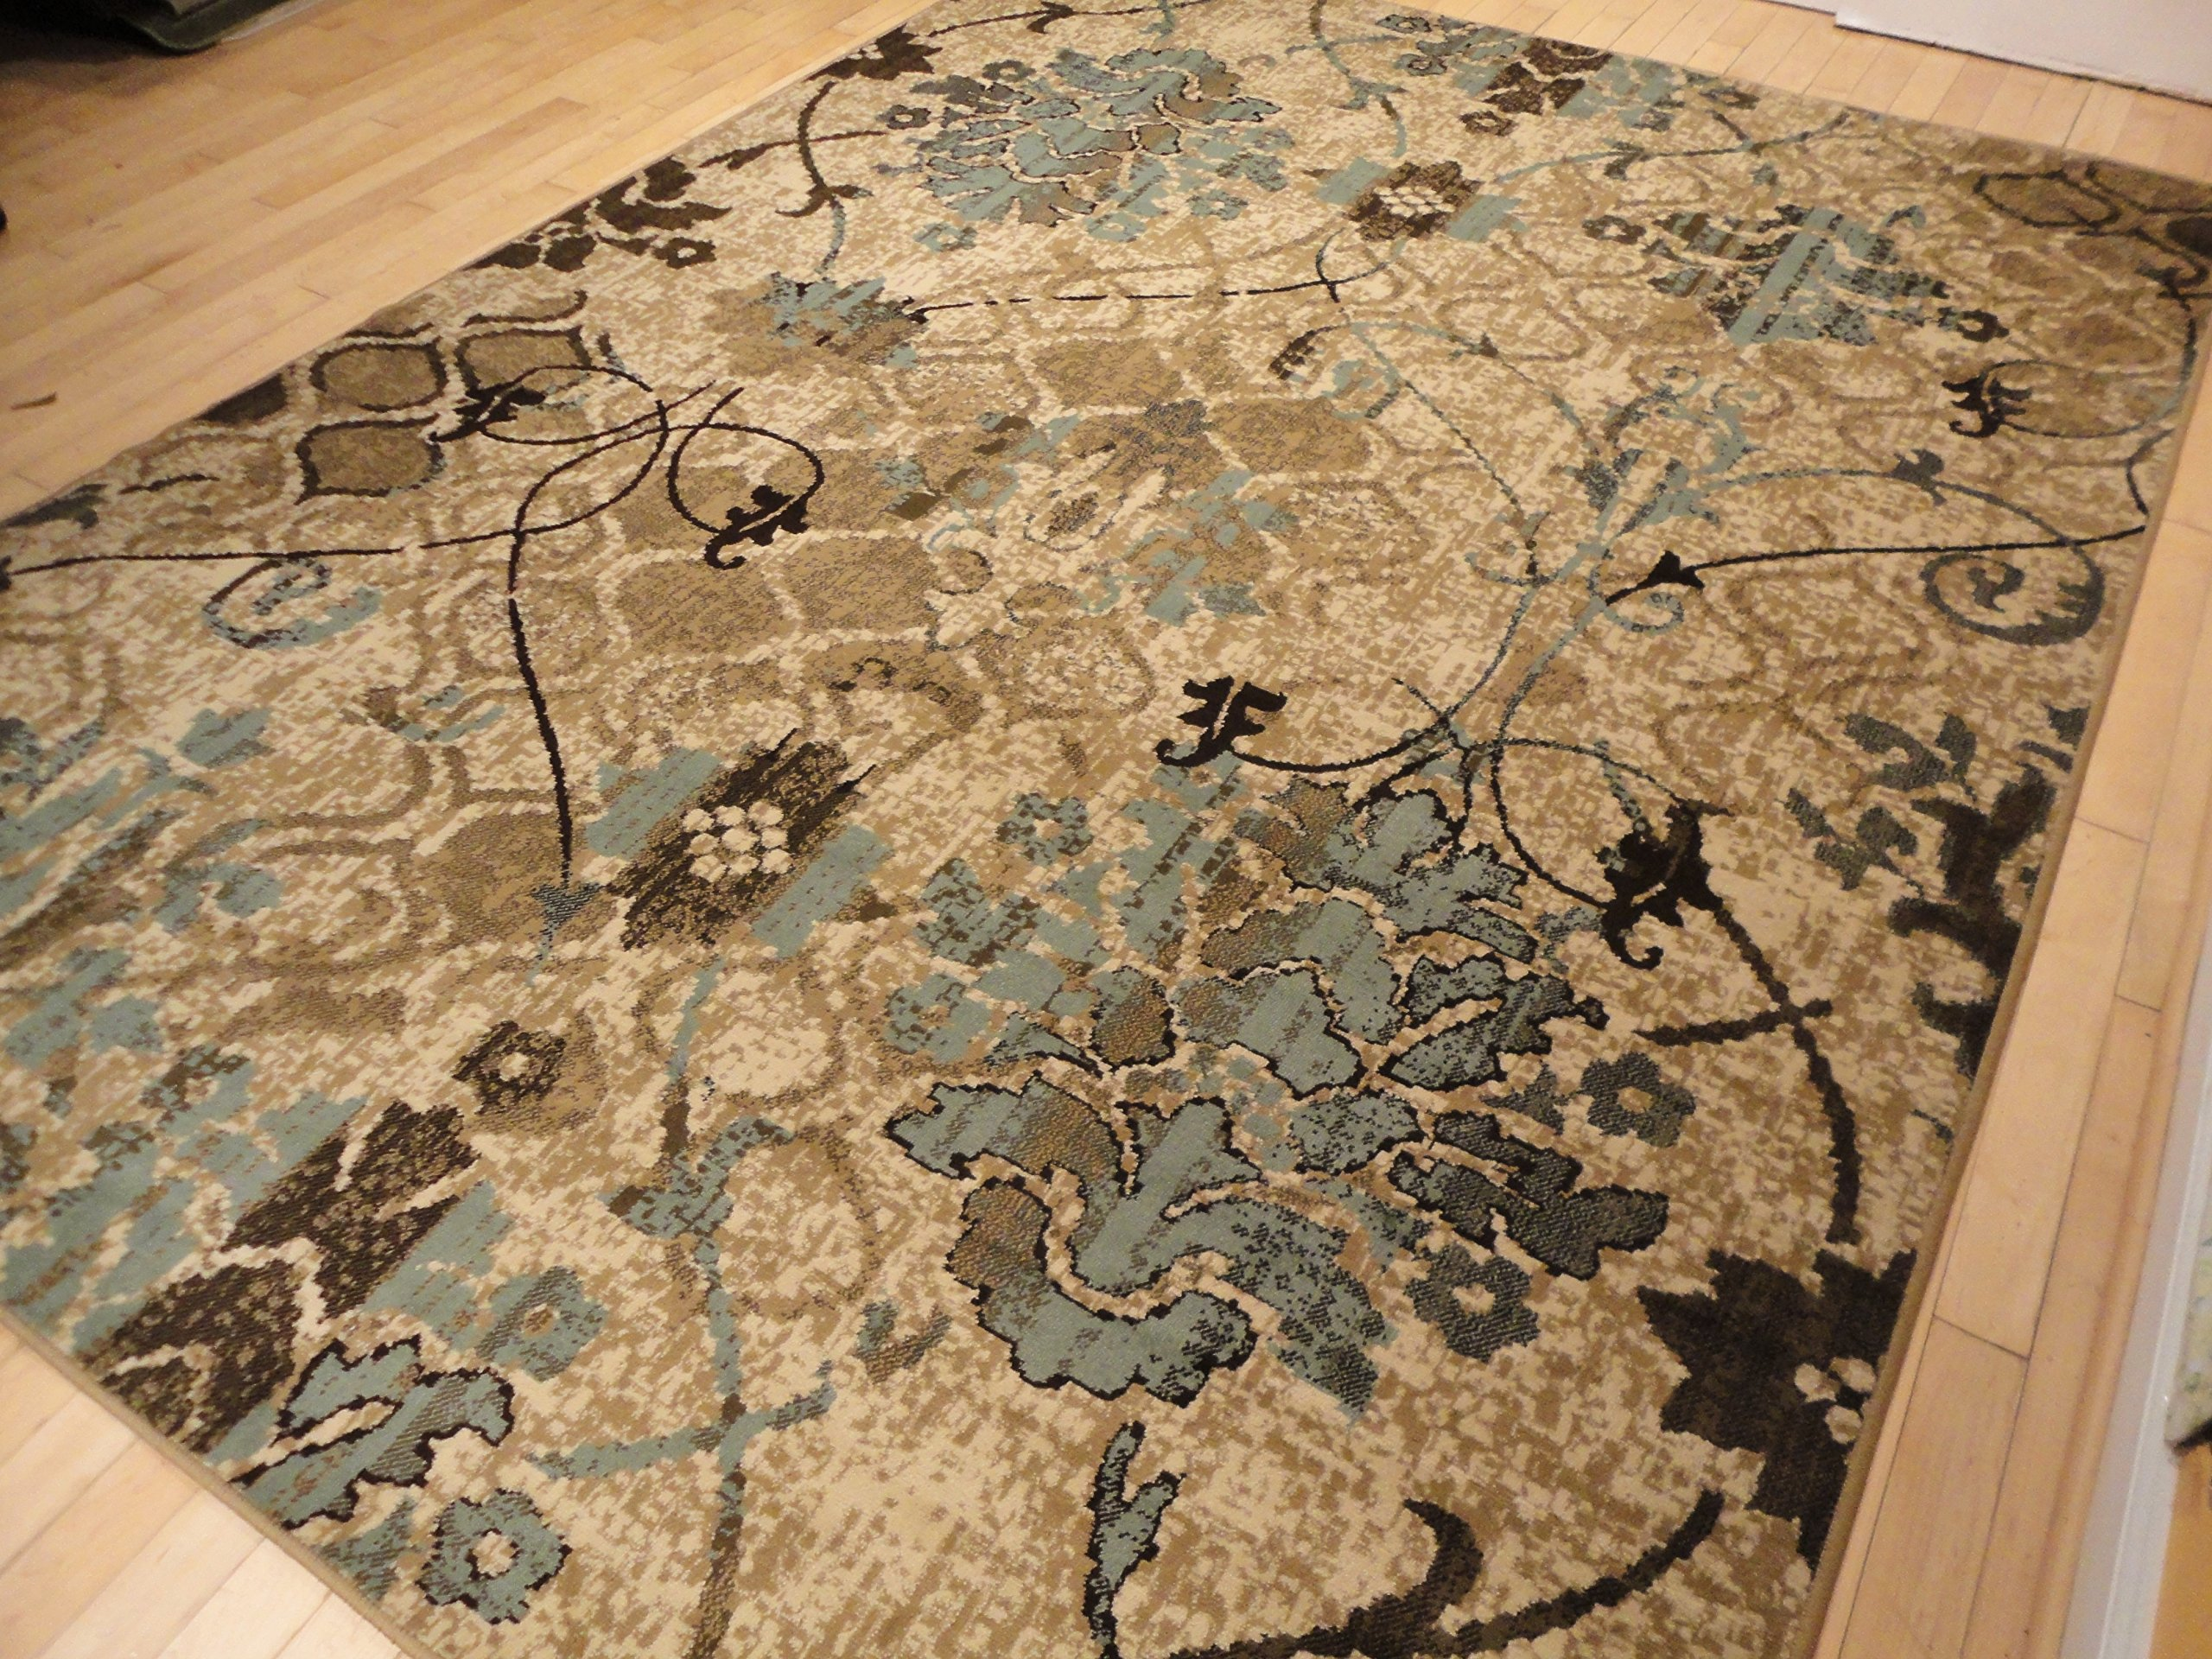 Cheap Clearance Rugs 8x10 Find Clearance Rugs 8x10 Deals On Line At